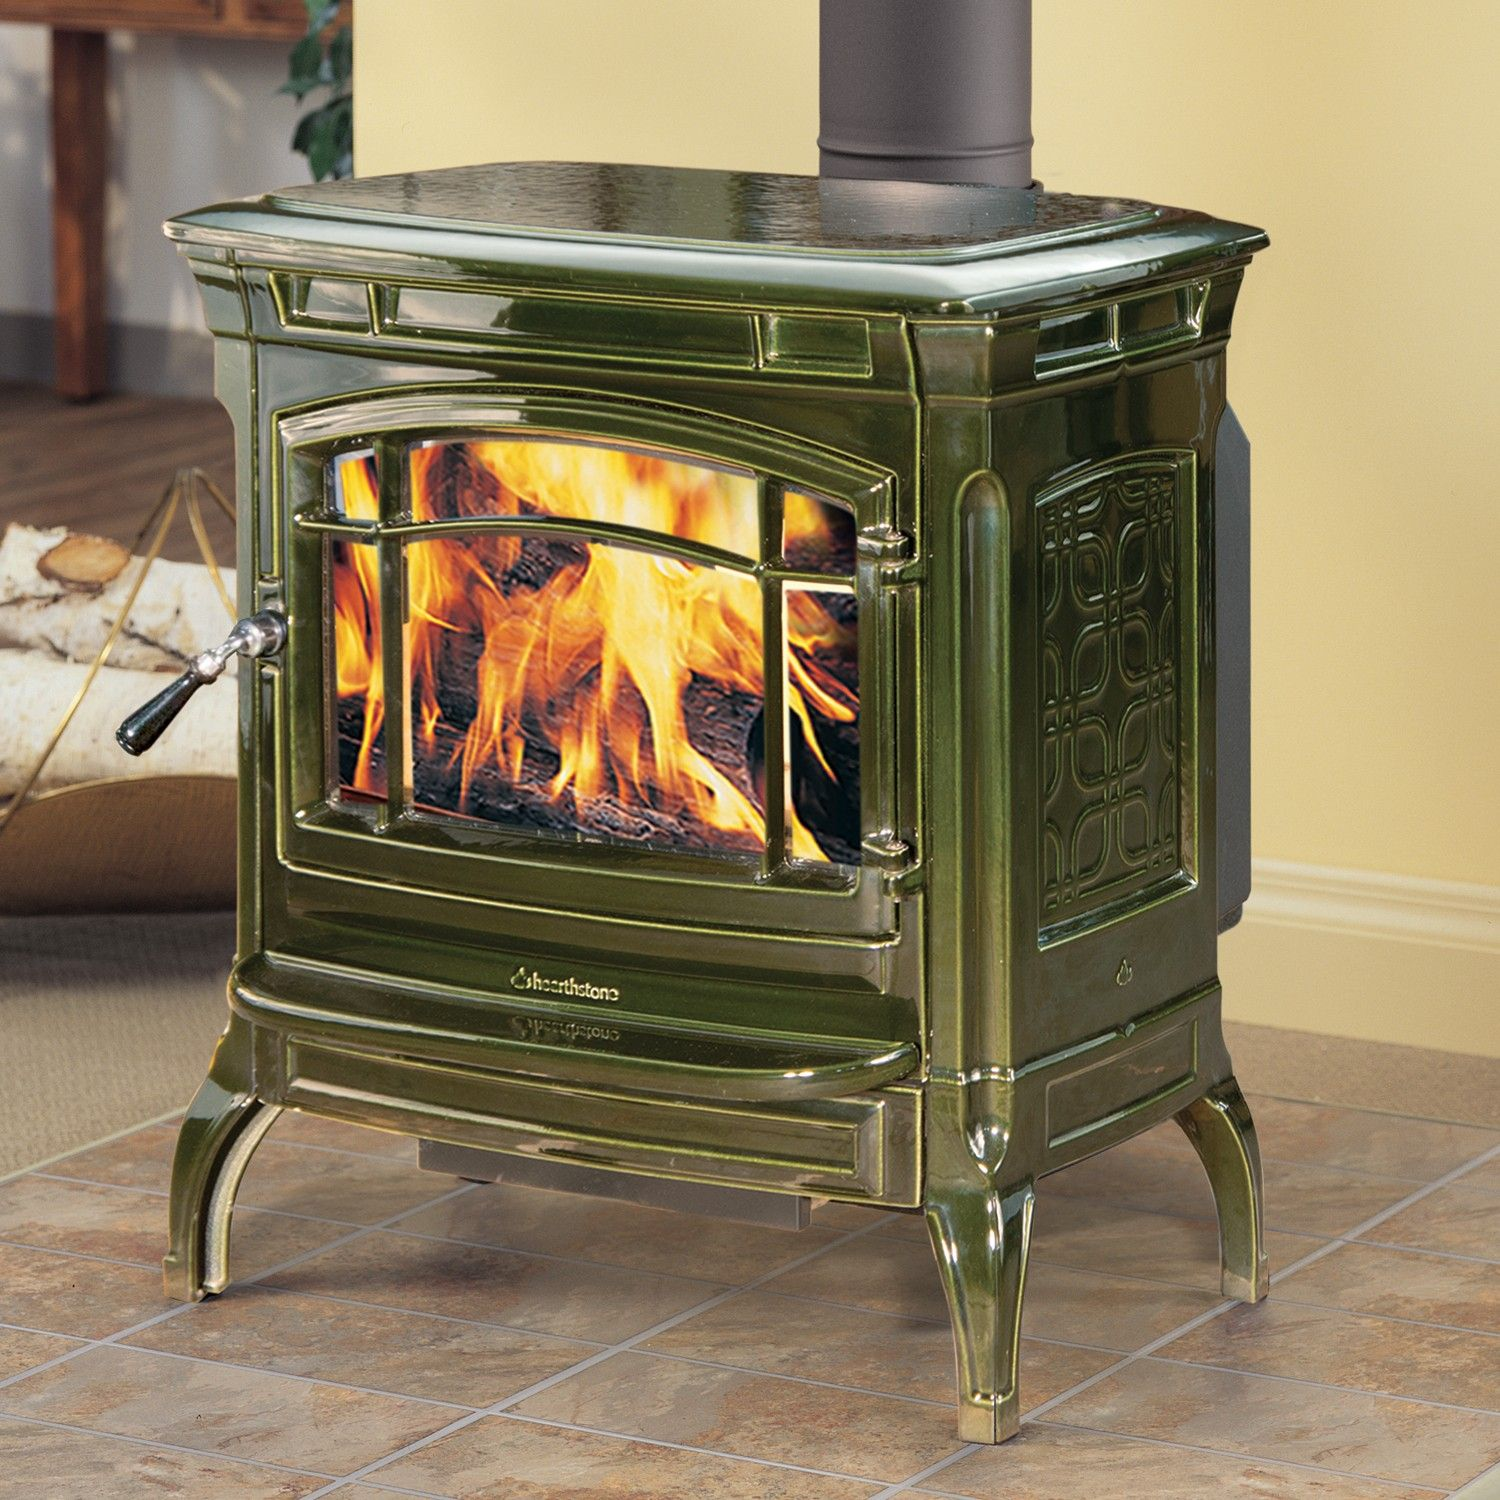 Shelburne 8371 wood stove with with basil majolica enamel finish, by  Hearthstone. Heats up - Shelburne 8371 Wood Stove With With Basil Majolica Enamel Finish